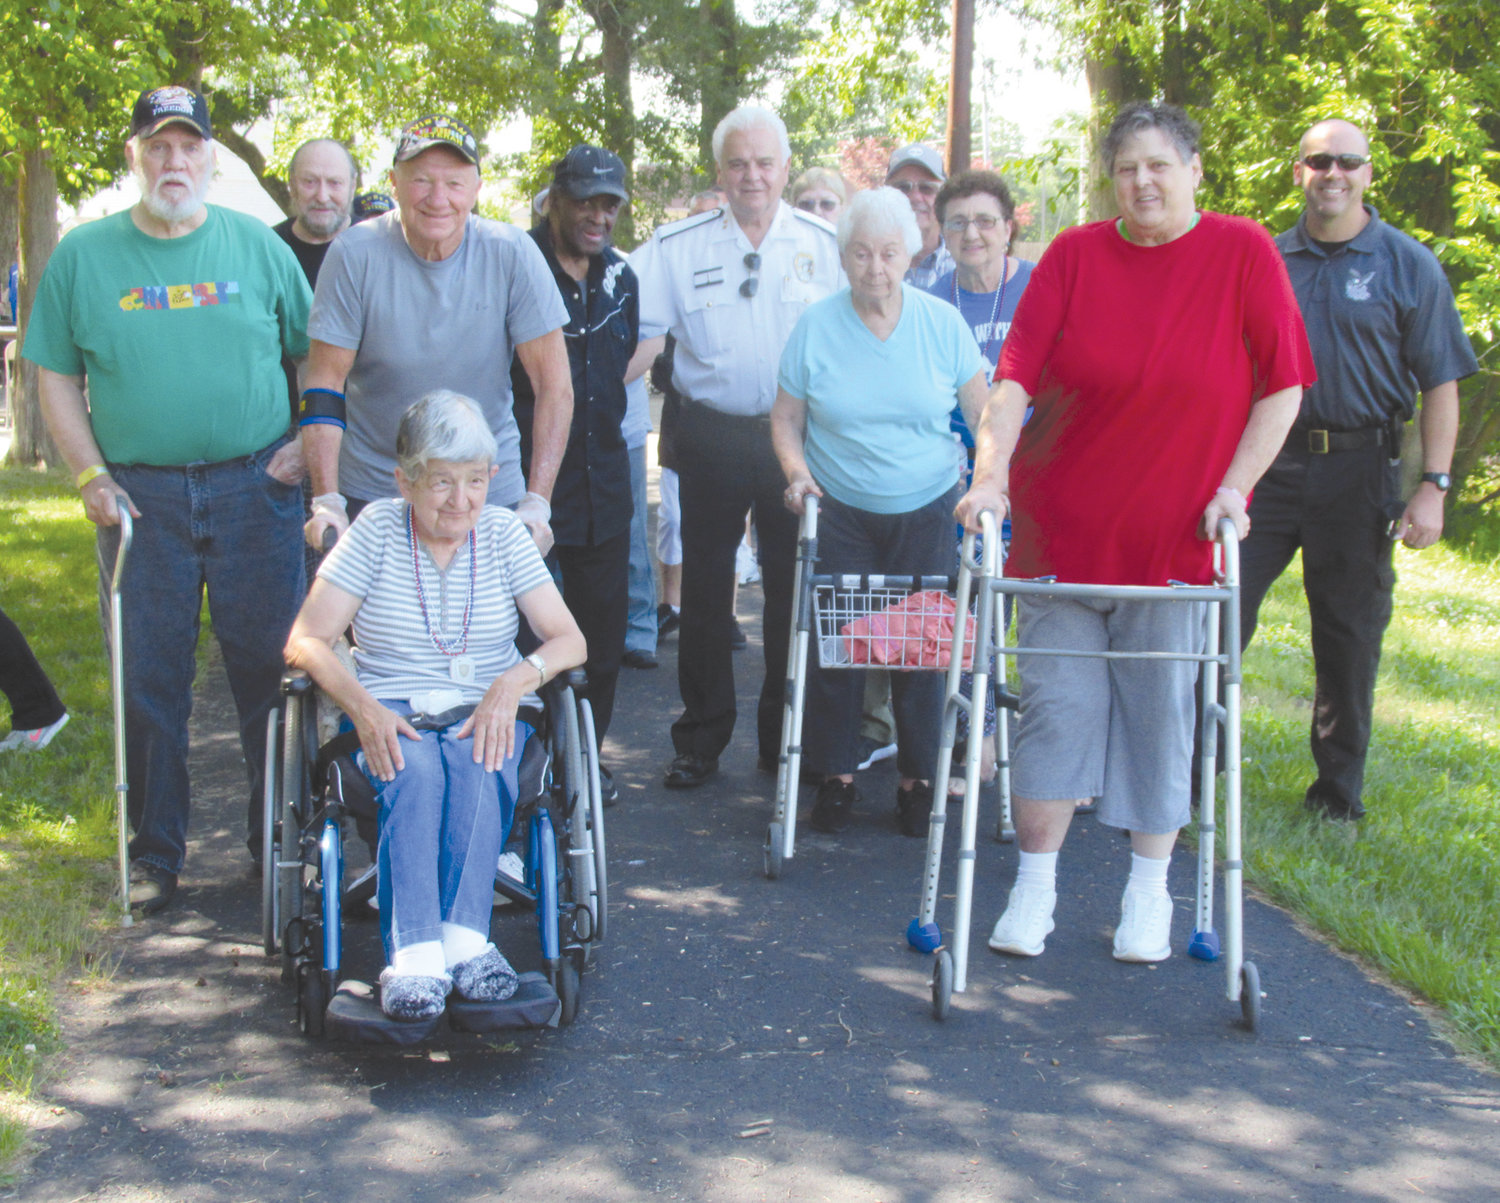 PARK PATROL: Jane Cimaglia had the honor of leading last Thursday morning's Walk with Cops season opener. She is assisted by veteran volunteer John Teolis as the traditional trek about Johnston War Memorial Park begins.